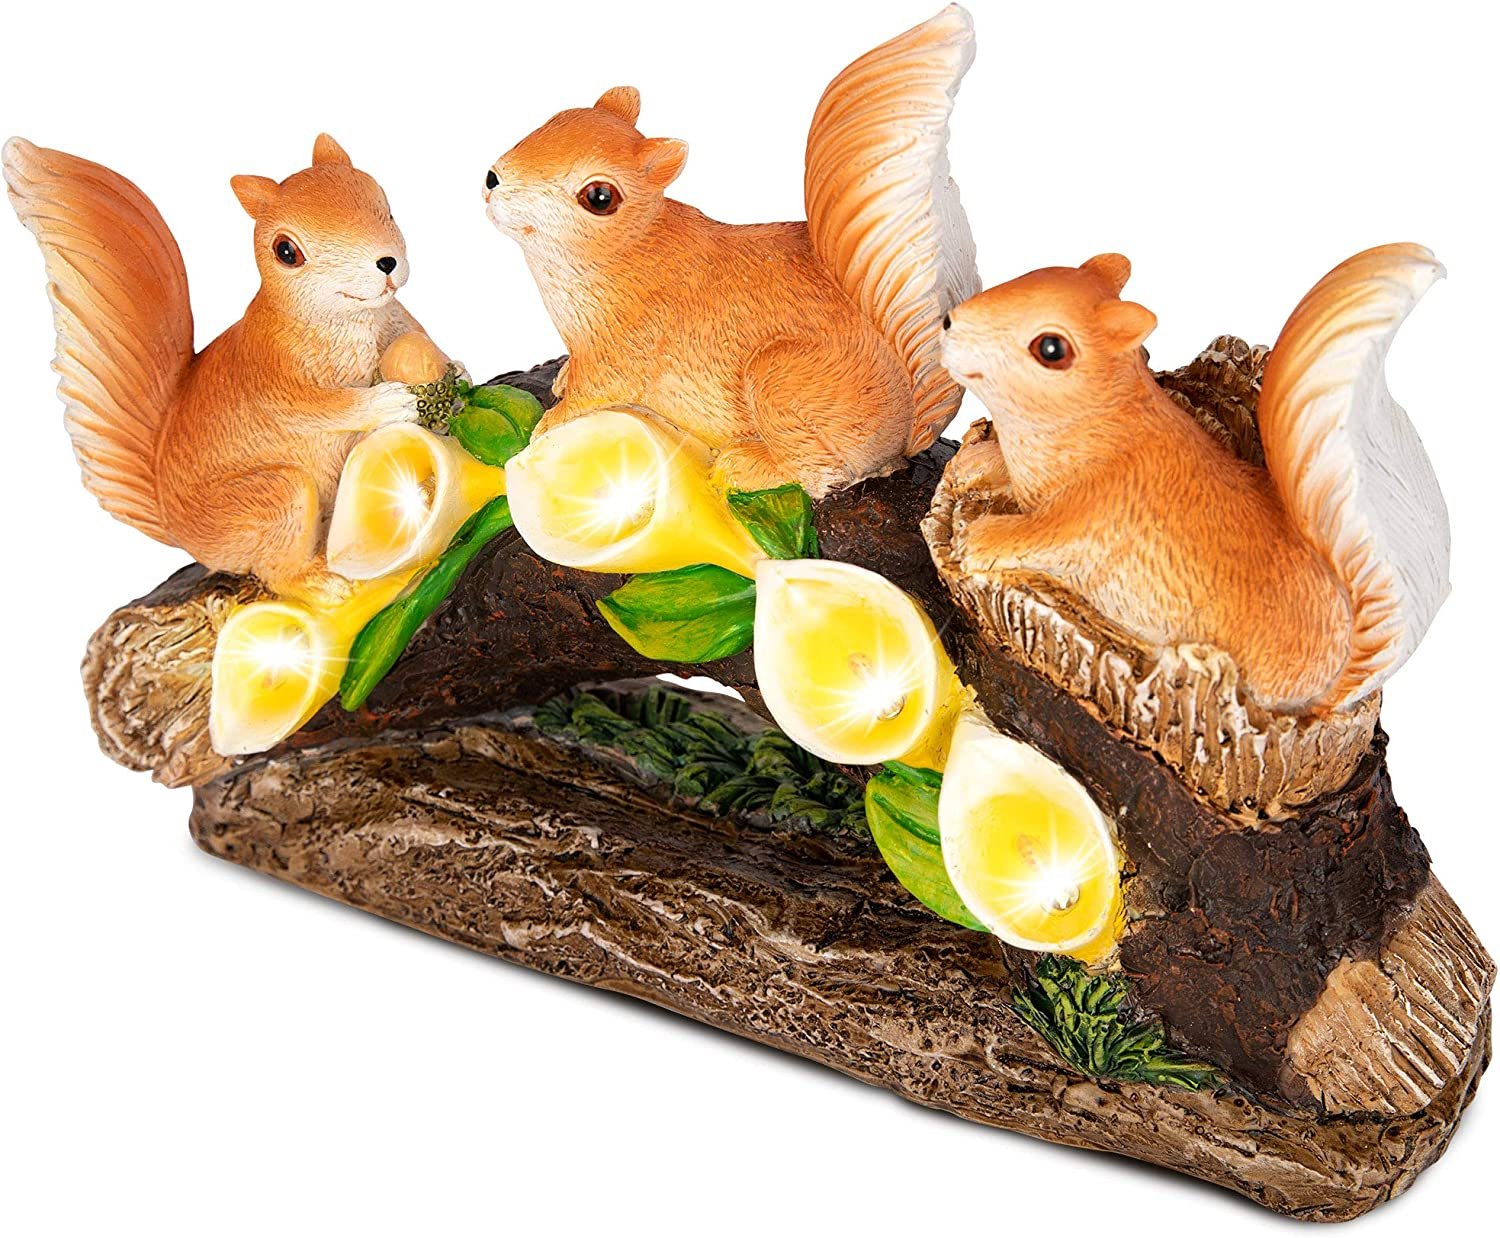 RealPetaled Ranking integrated Cheap sale 1st place Squirrels Garden Statues and O Art Figurines